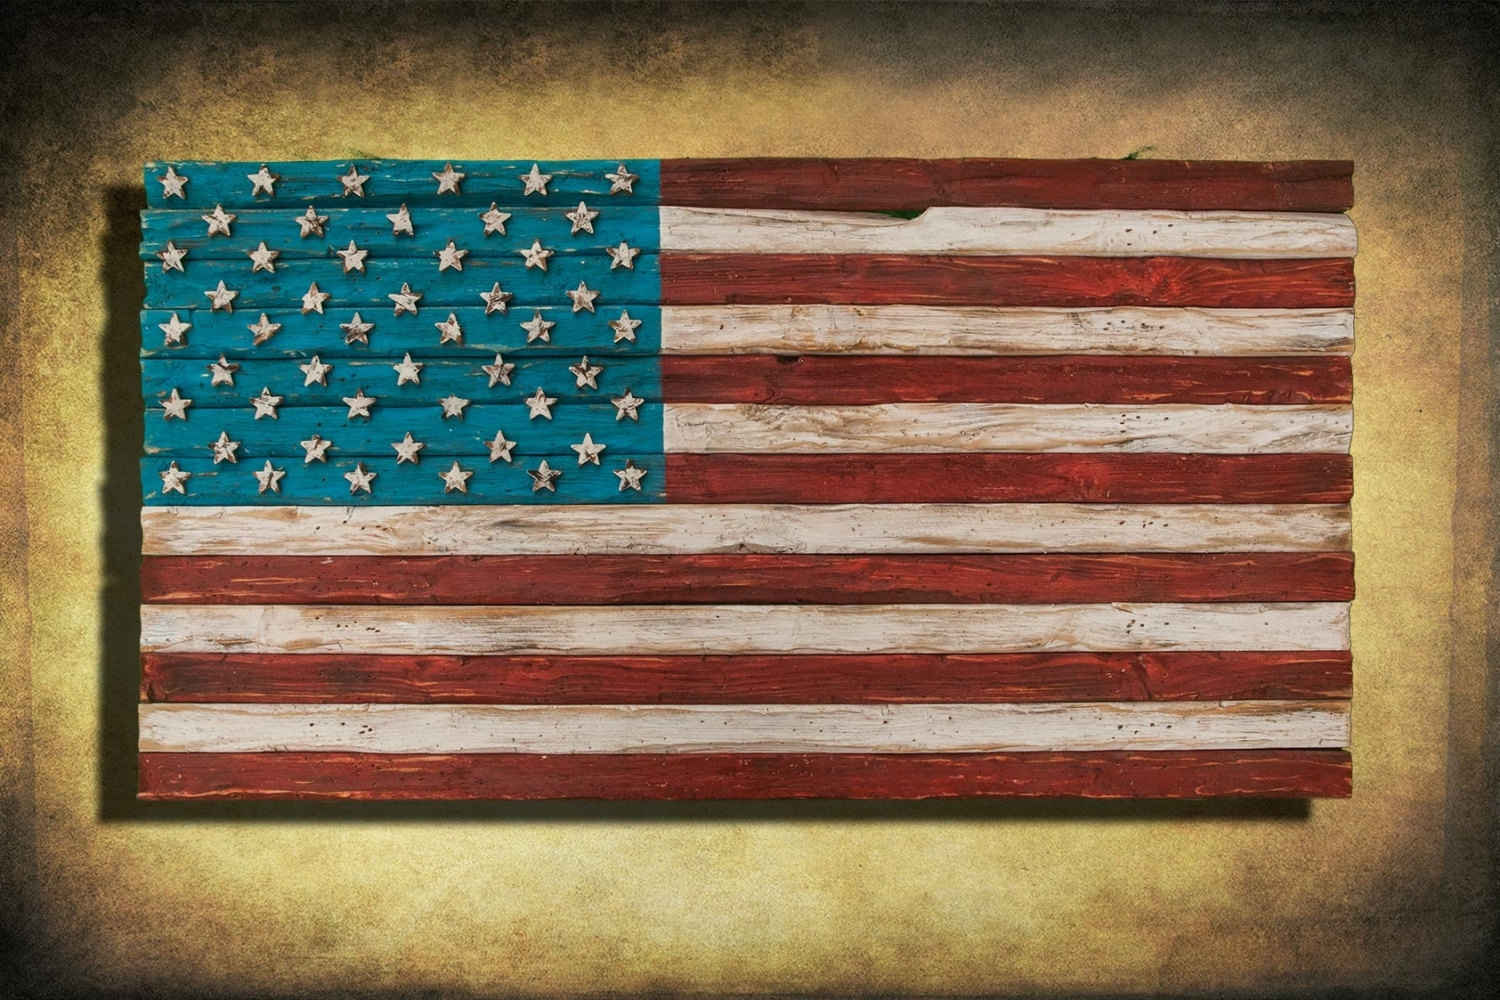 American Flag, Weathered Wood, One Of A Kind, 3d, Wooden, Vintage With Regard To Latest Vintage American Flag Wall Art (View 9 of 20)